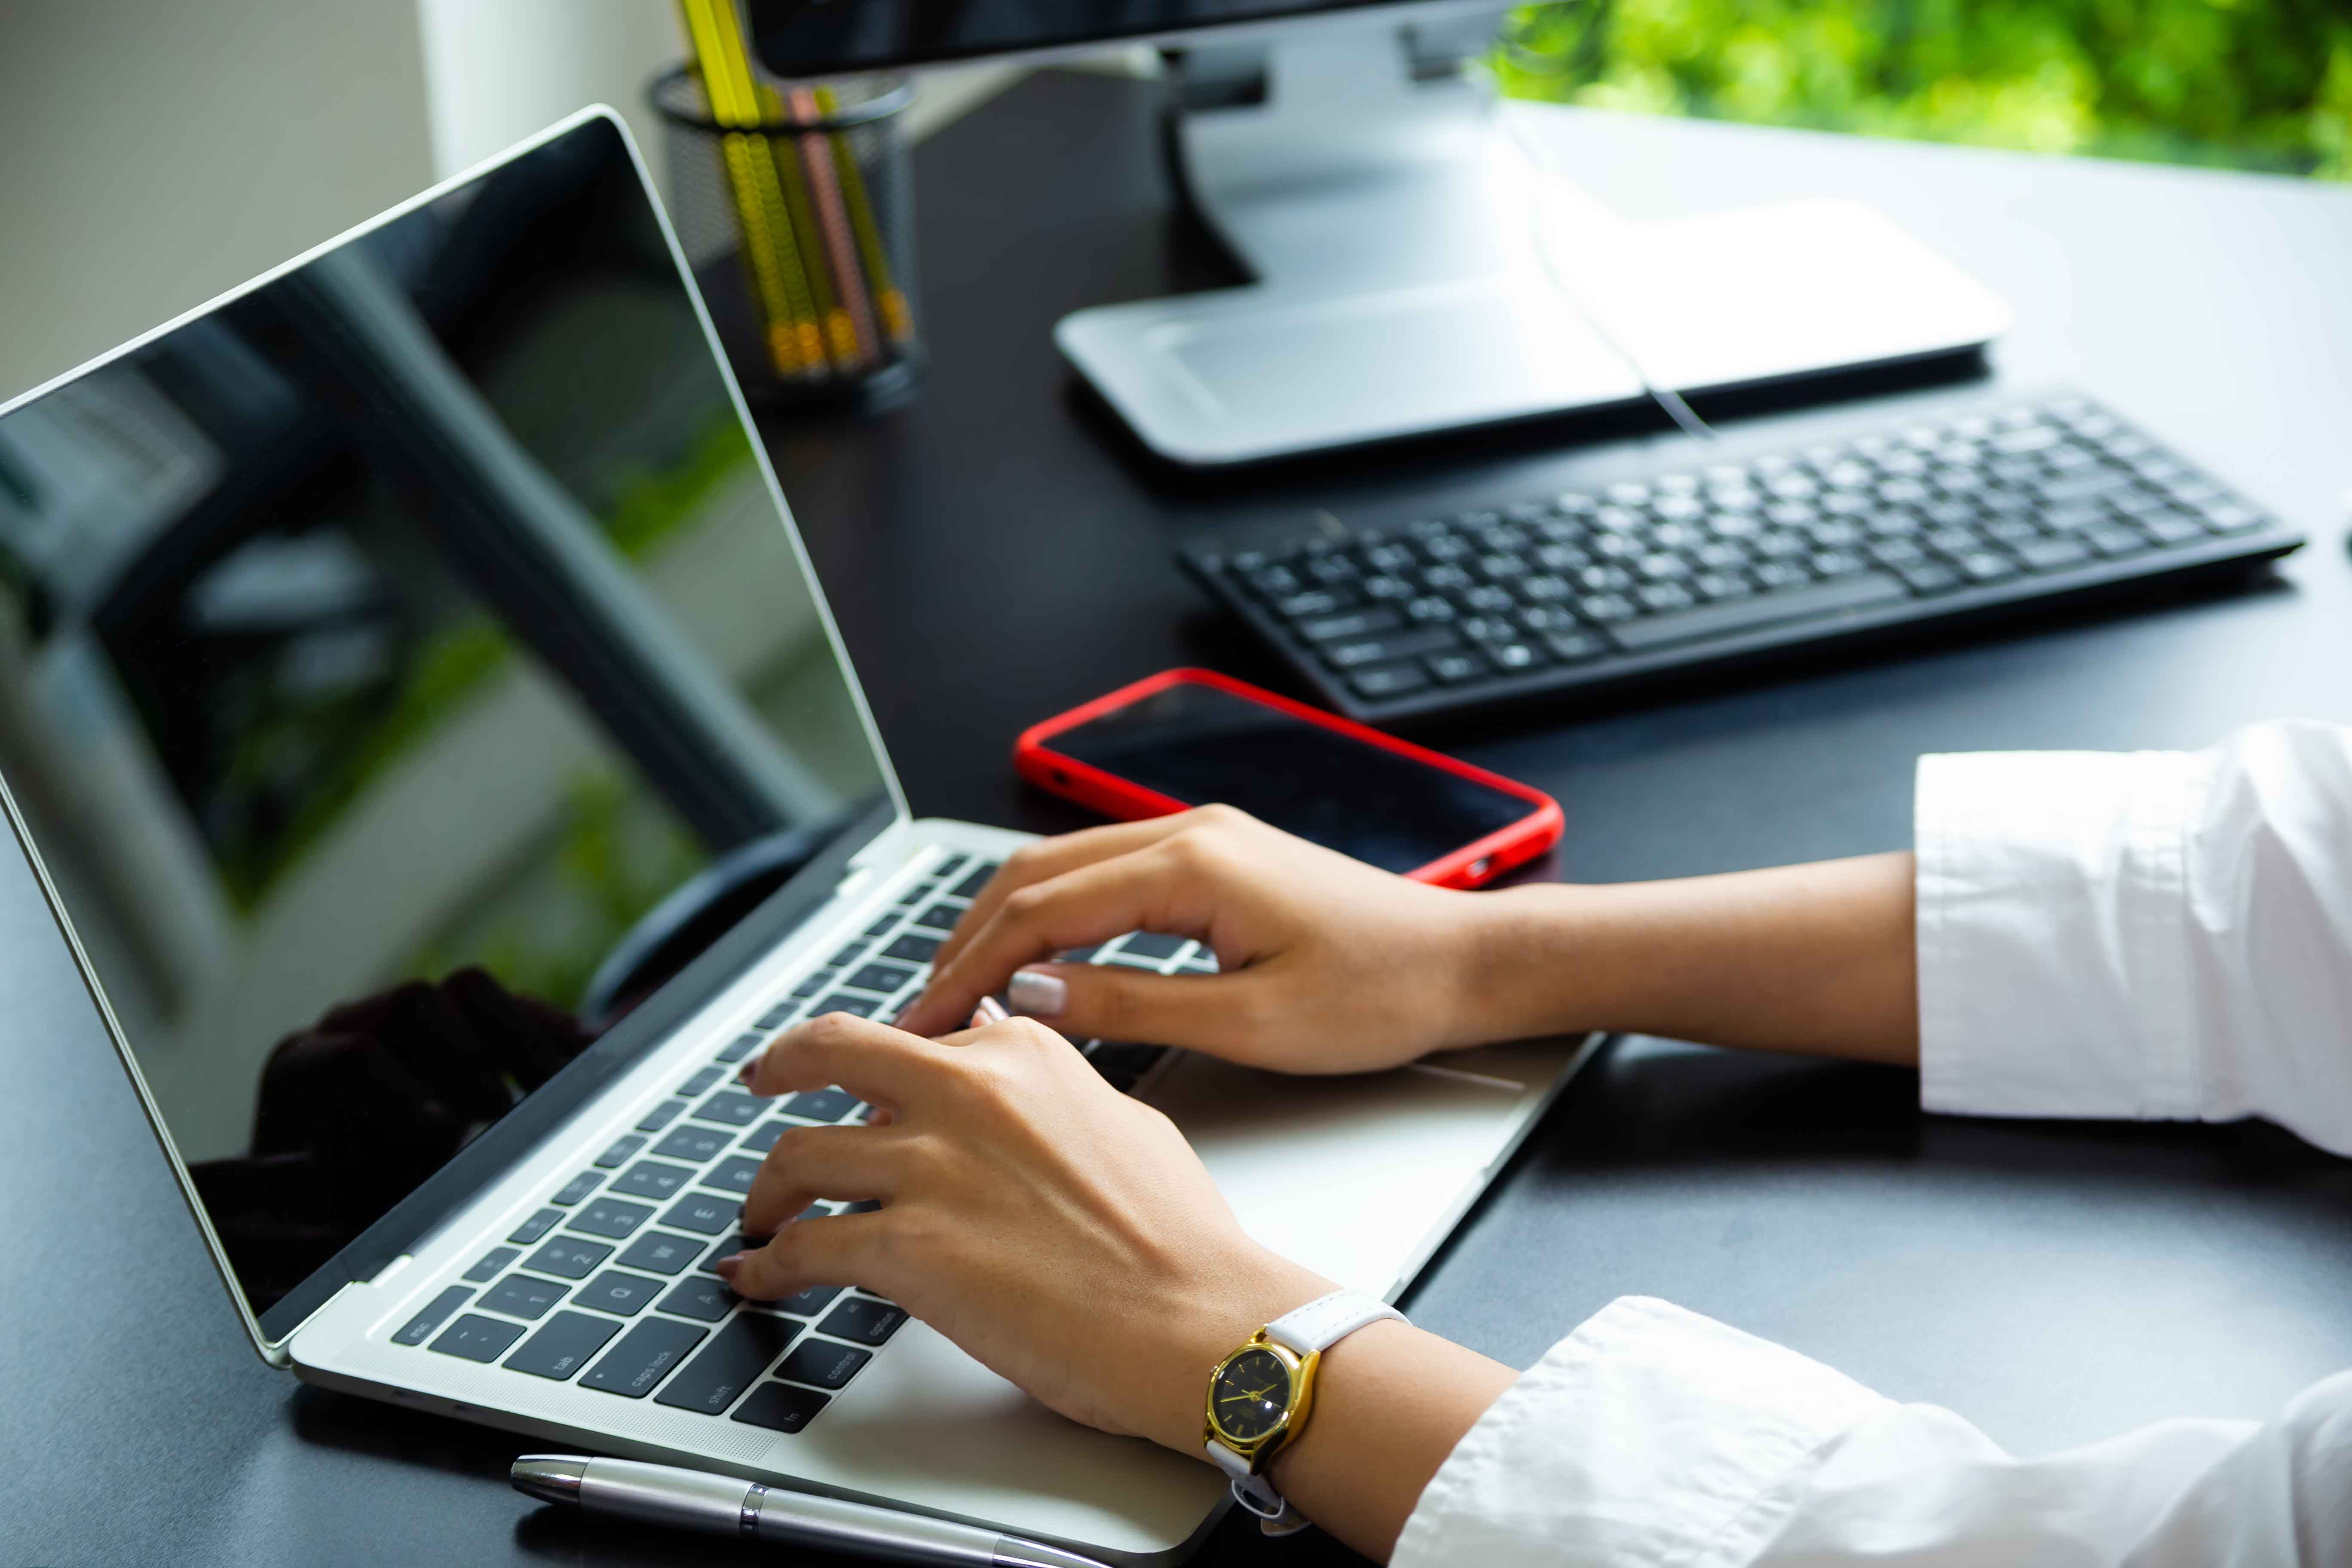 Close up hand of female typing on keyboard of laptop on table, working with technology device in modern office